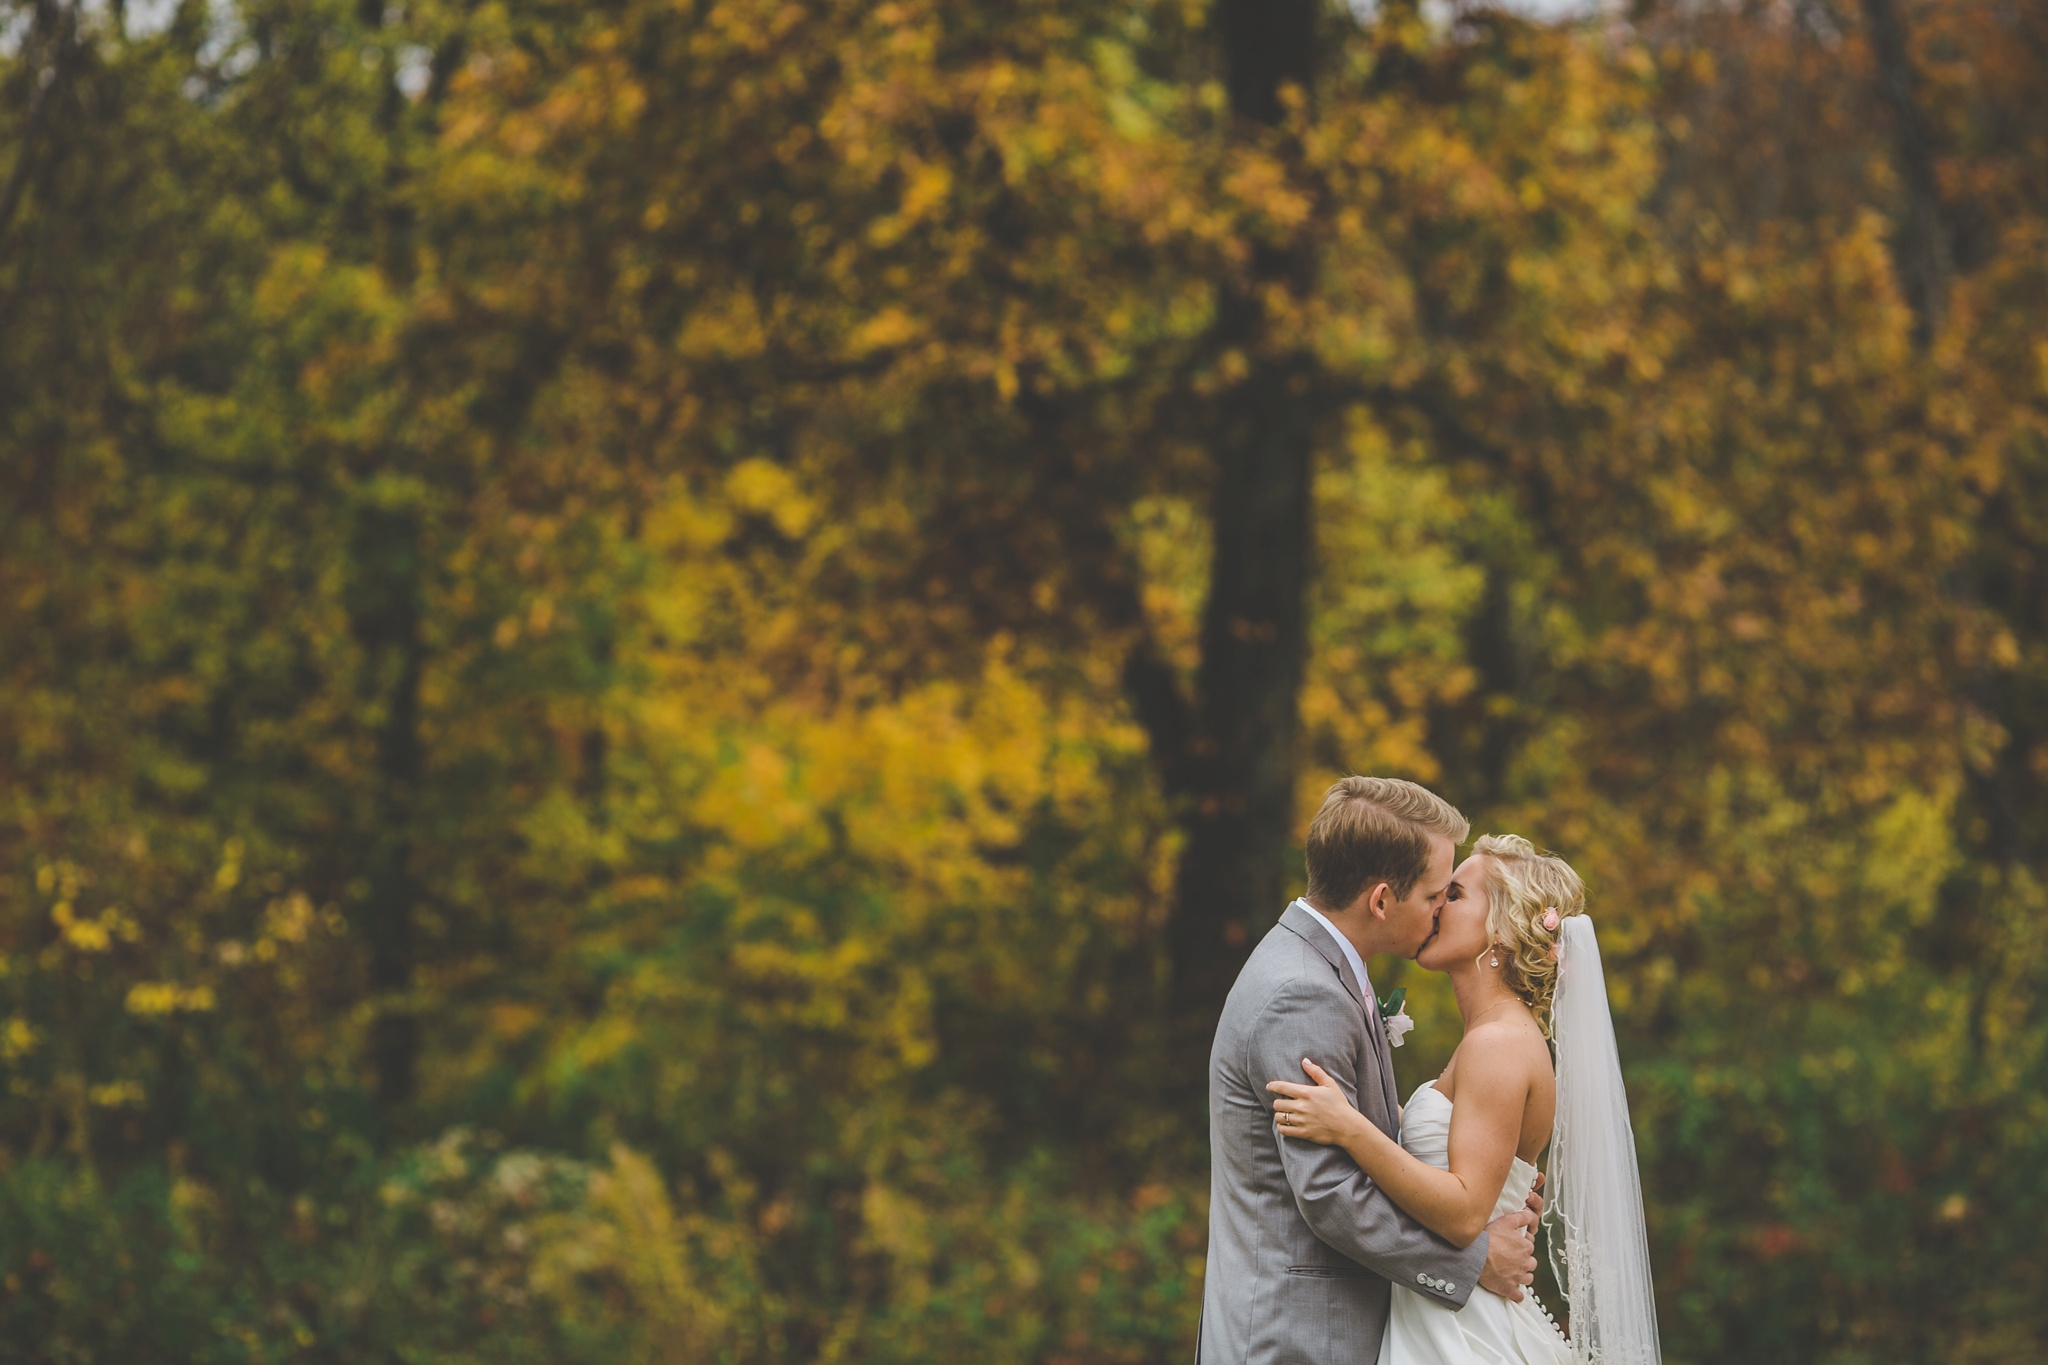 Louisville Wedding Photographer | Fall Wedding_0062.jpg